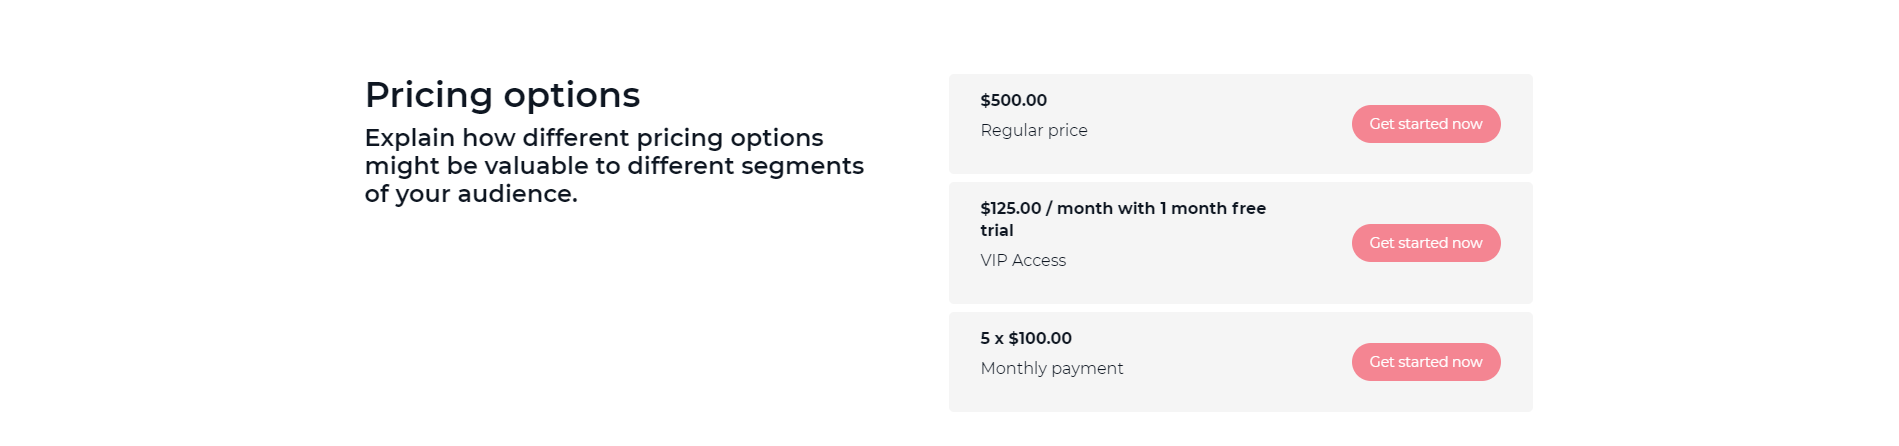 pricing_options_-_empire_spark.png